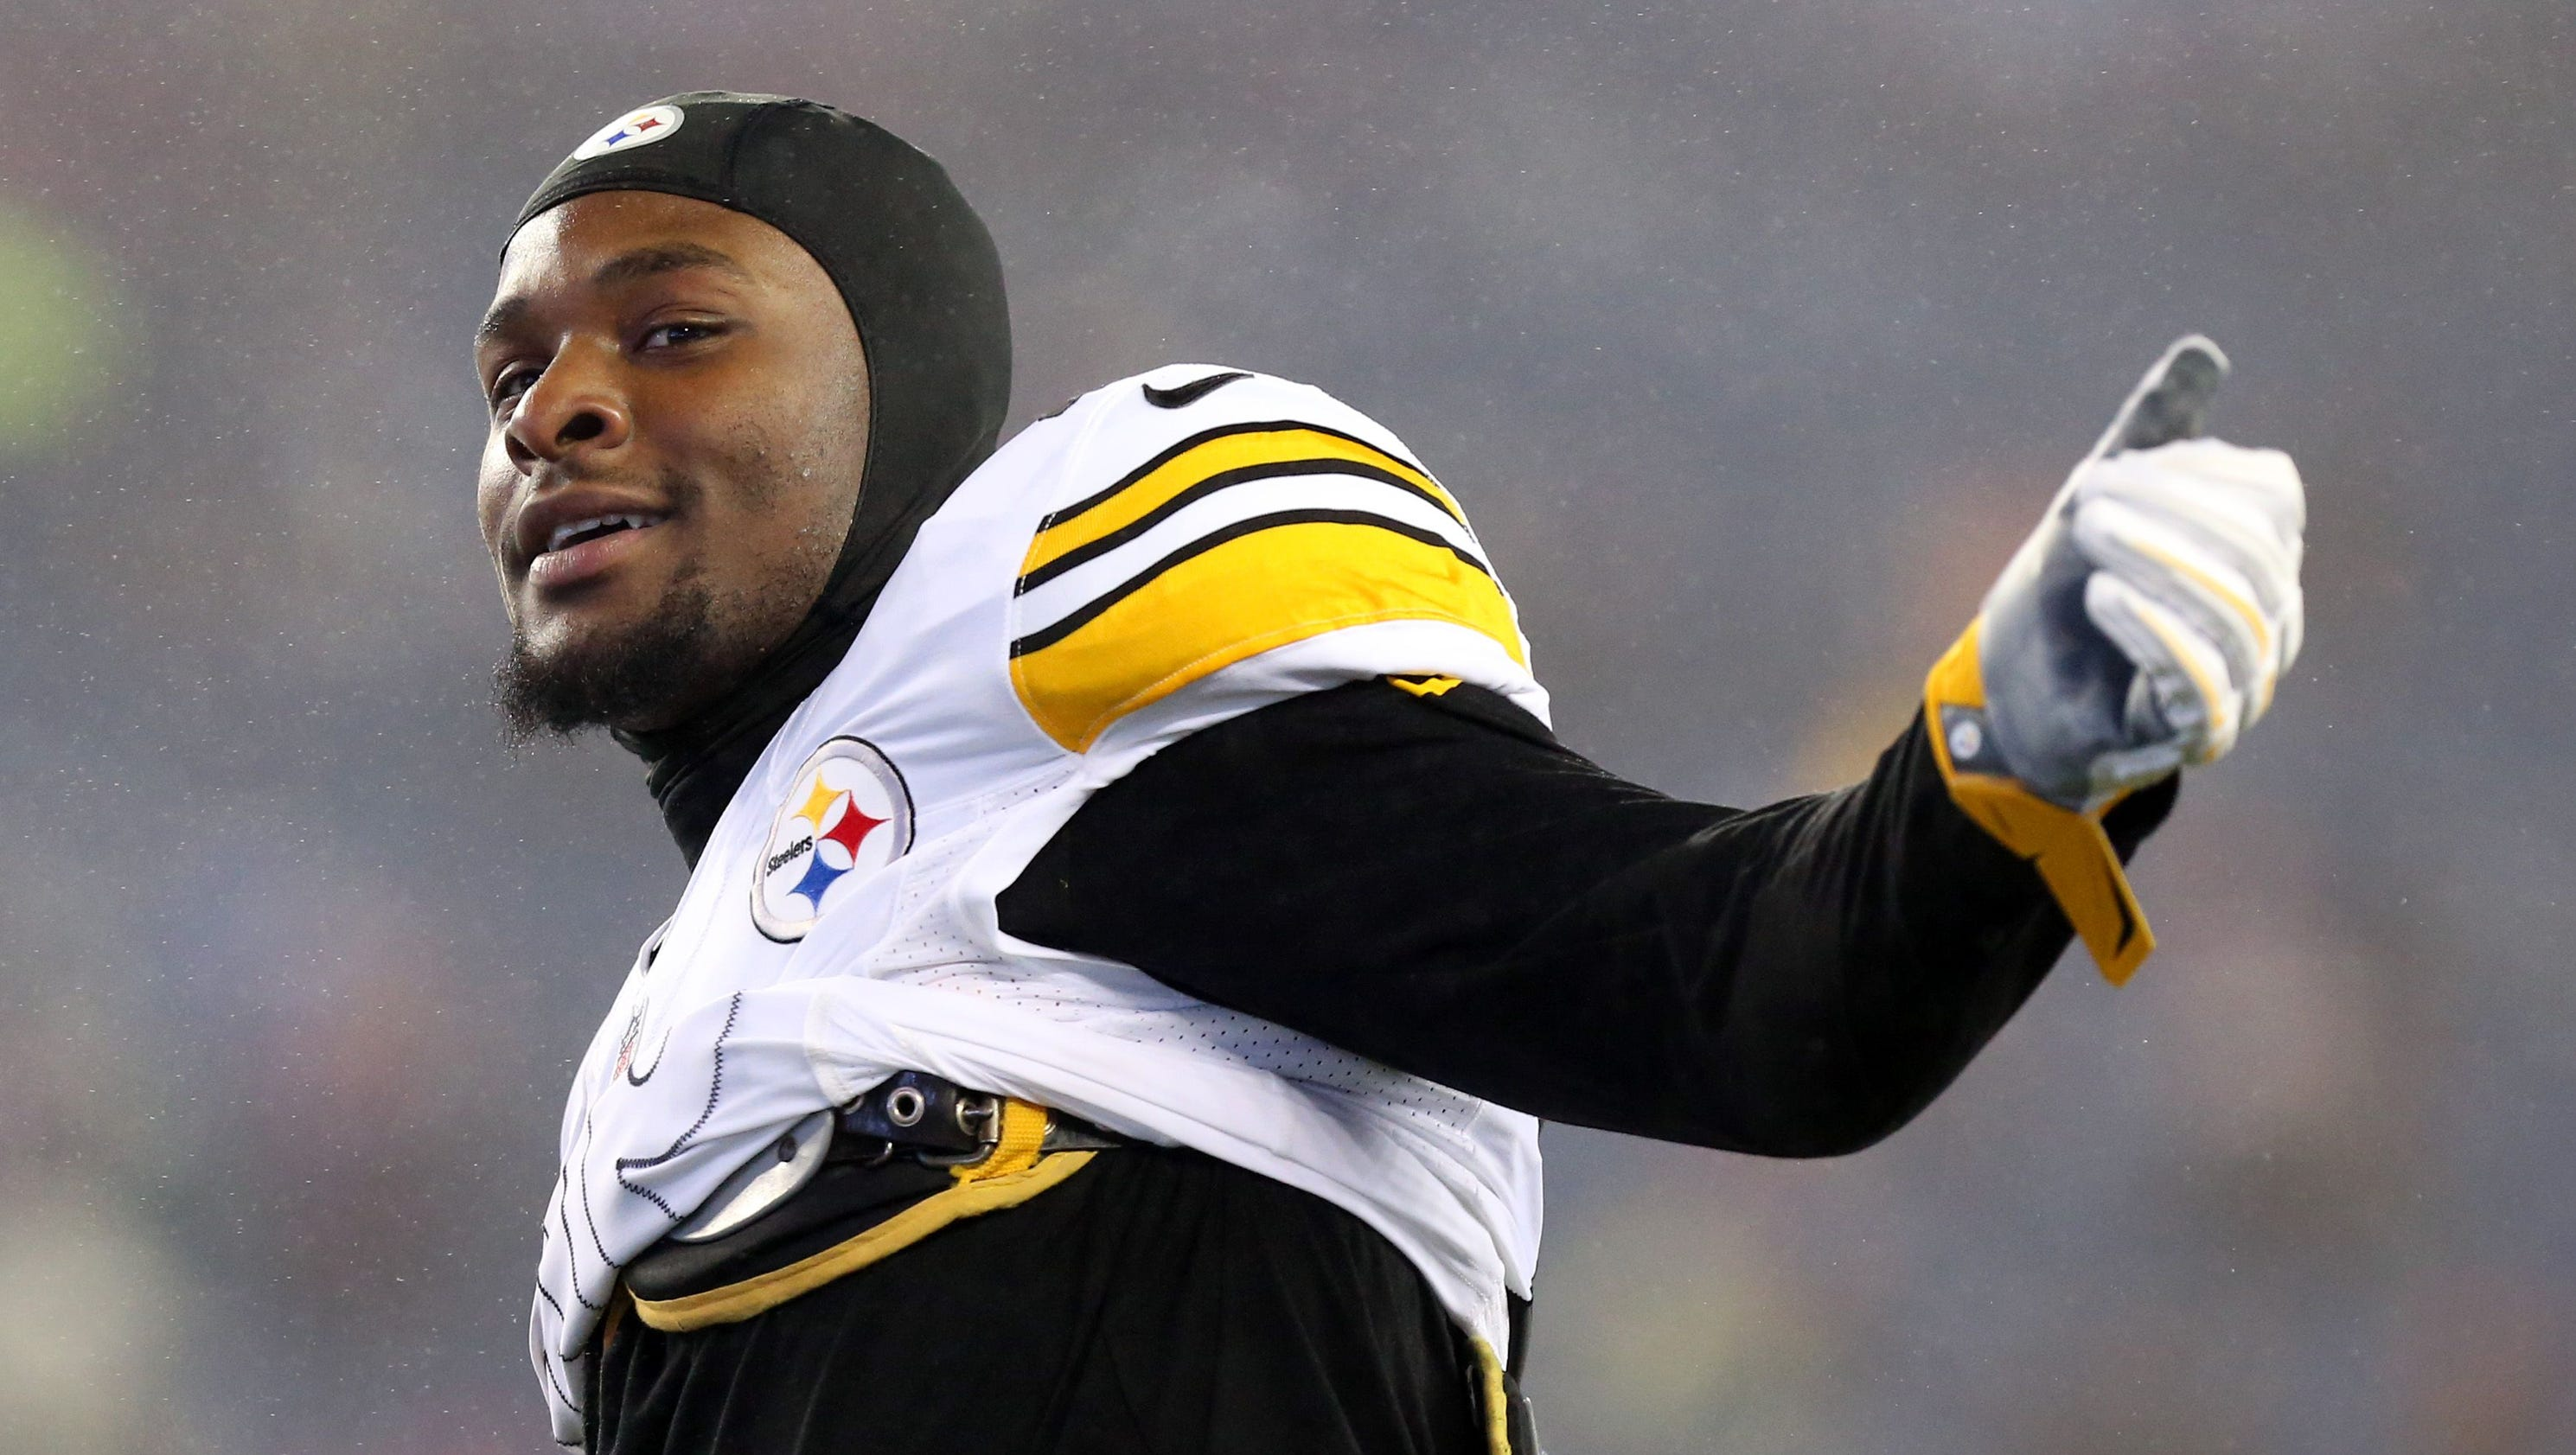 Le Veon Bell >> Steelers RB Le'Veon Bell undergoes surgery for groin injury